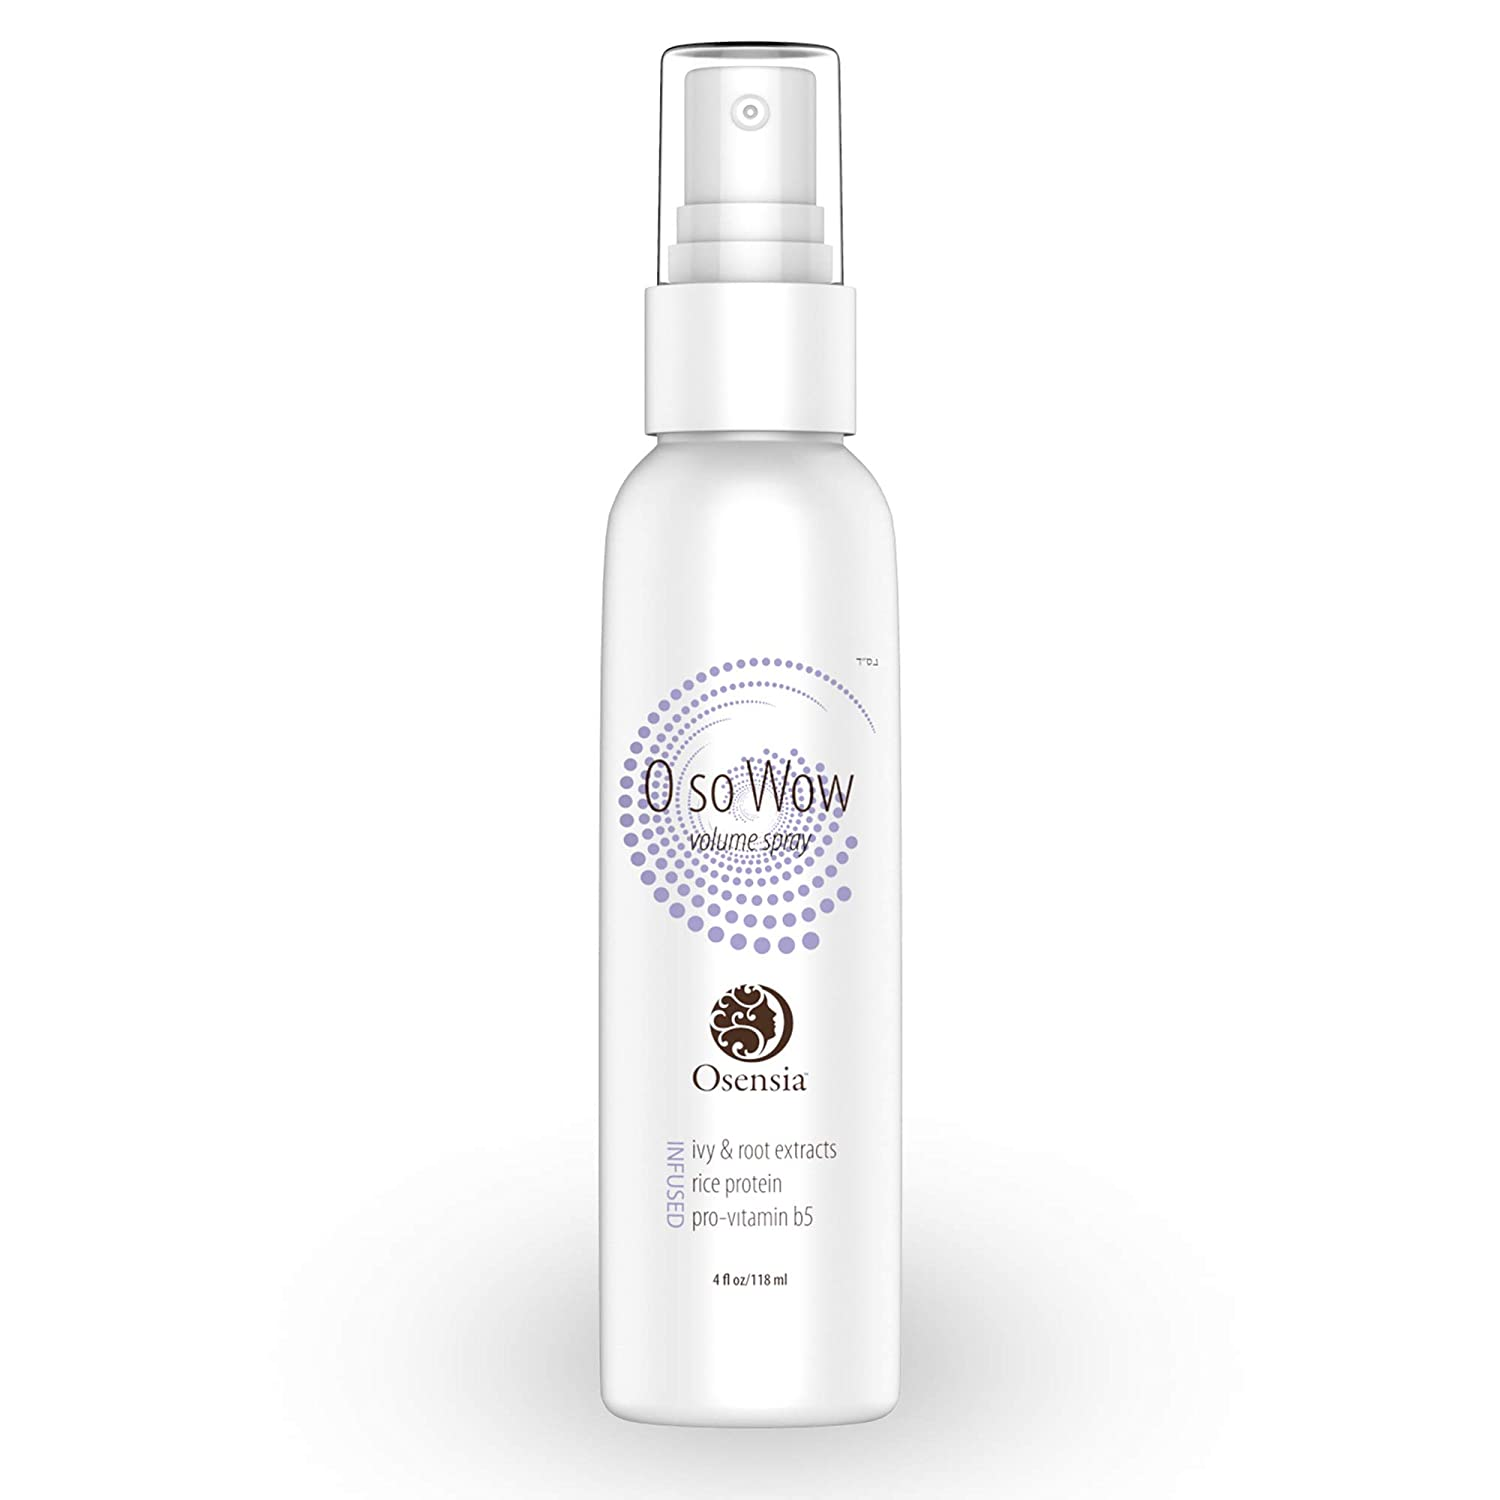 Volumizing Spray - Thickening Texture Spray Gives Full, Voluminous Hair - Strengthen, Combat Oil, and Prevent Hair Loss - Panthenol, Burdock Root, Fenugreek for Hair Growth, Shine, Volume by Osensia